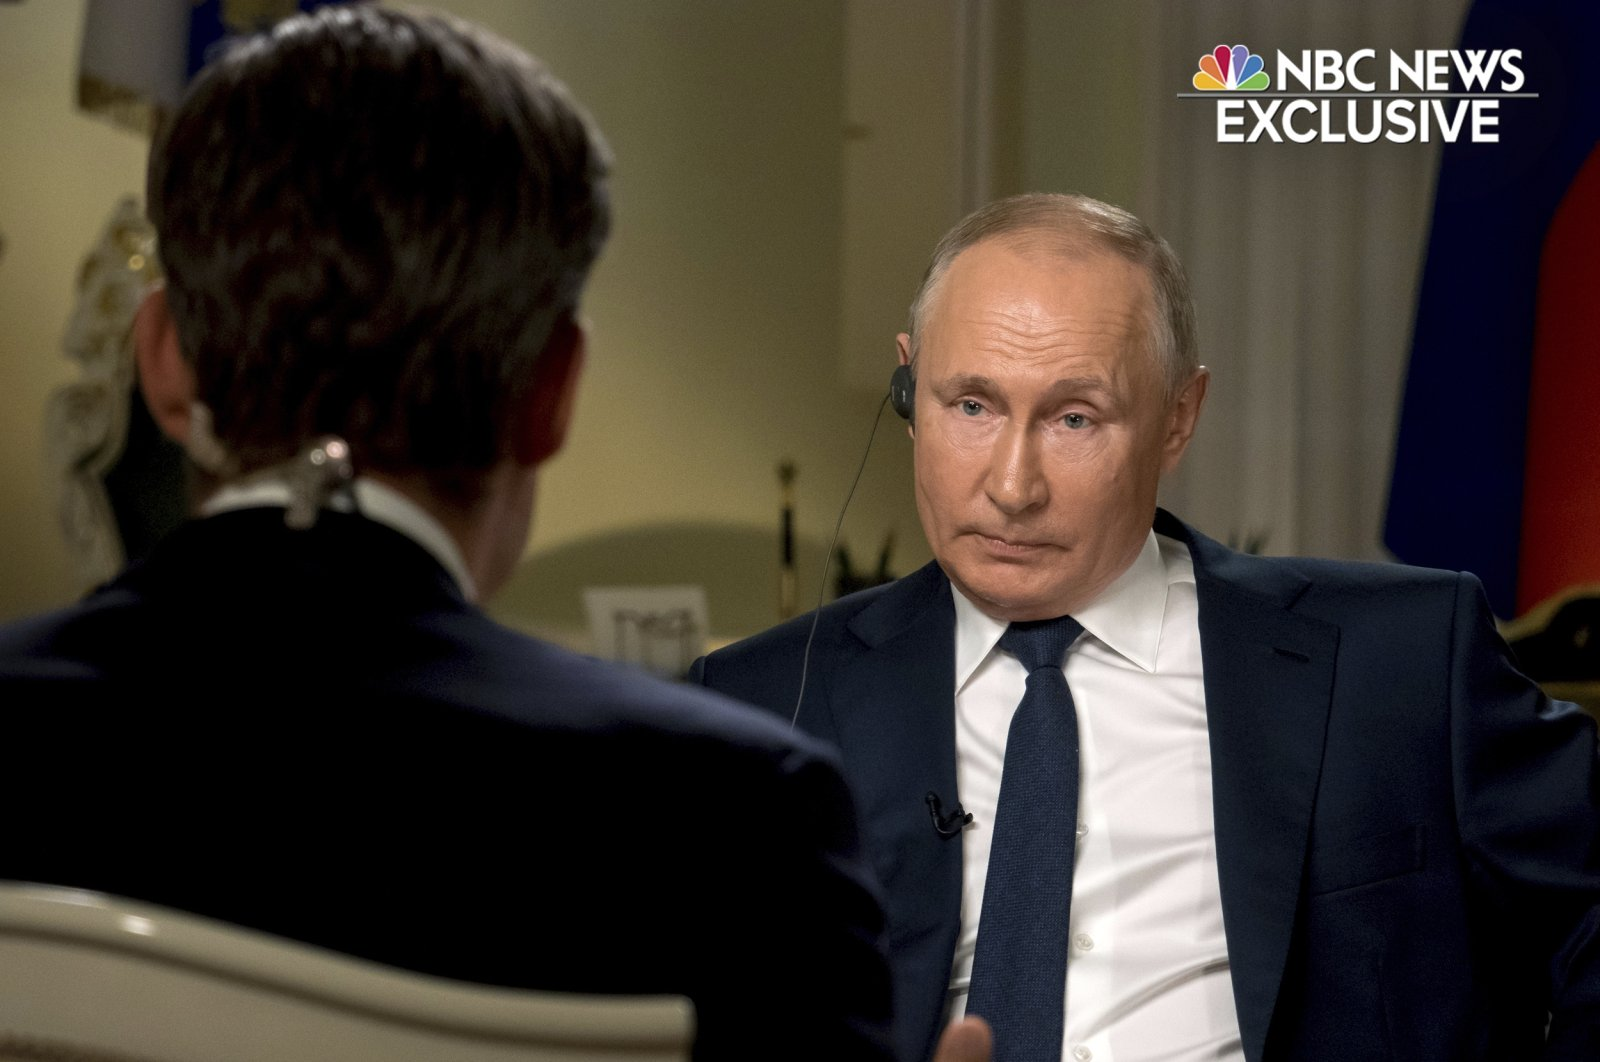 Keir Simmons (L) speaks with Russian President Vladimir Putin in an interview aired on June 14, 2021, two days before the Russian leader is to meet U.S. President Joe Biden in Geneva.  (NBC News via AP)